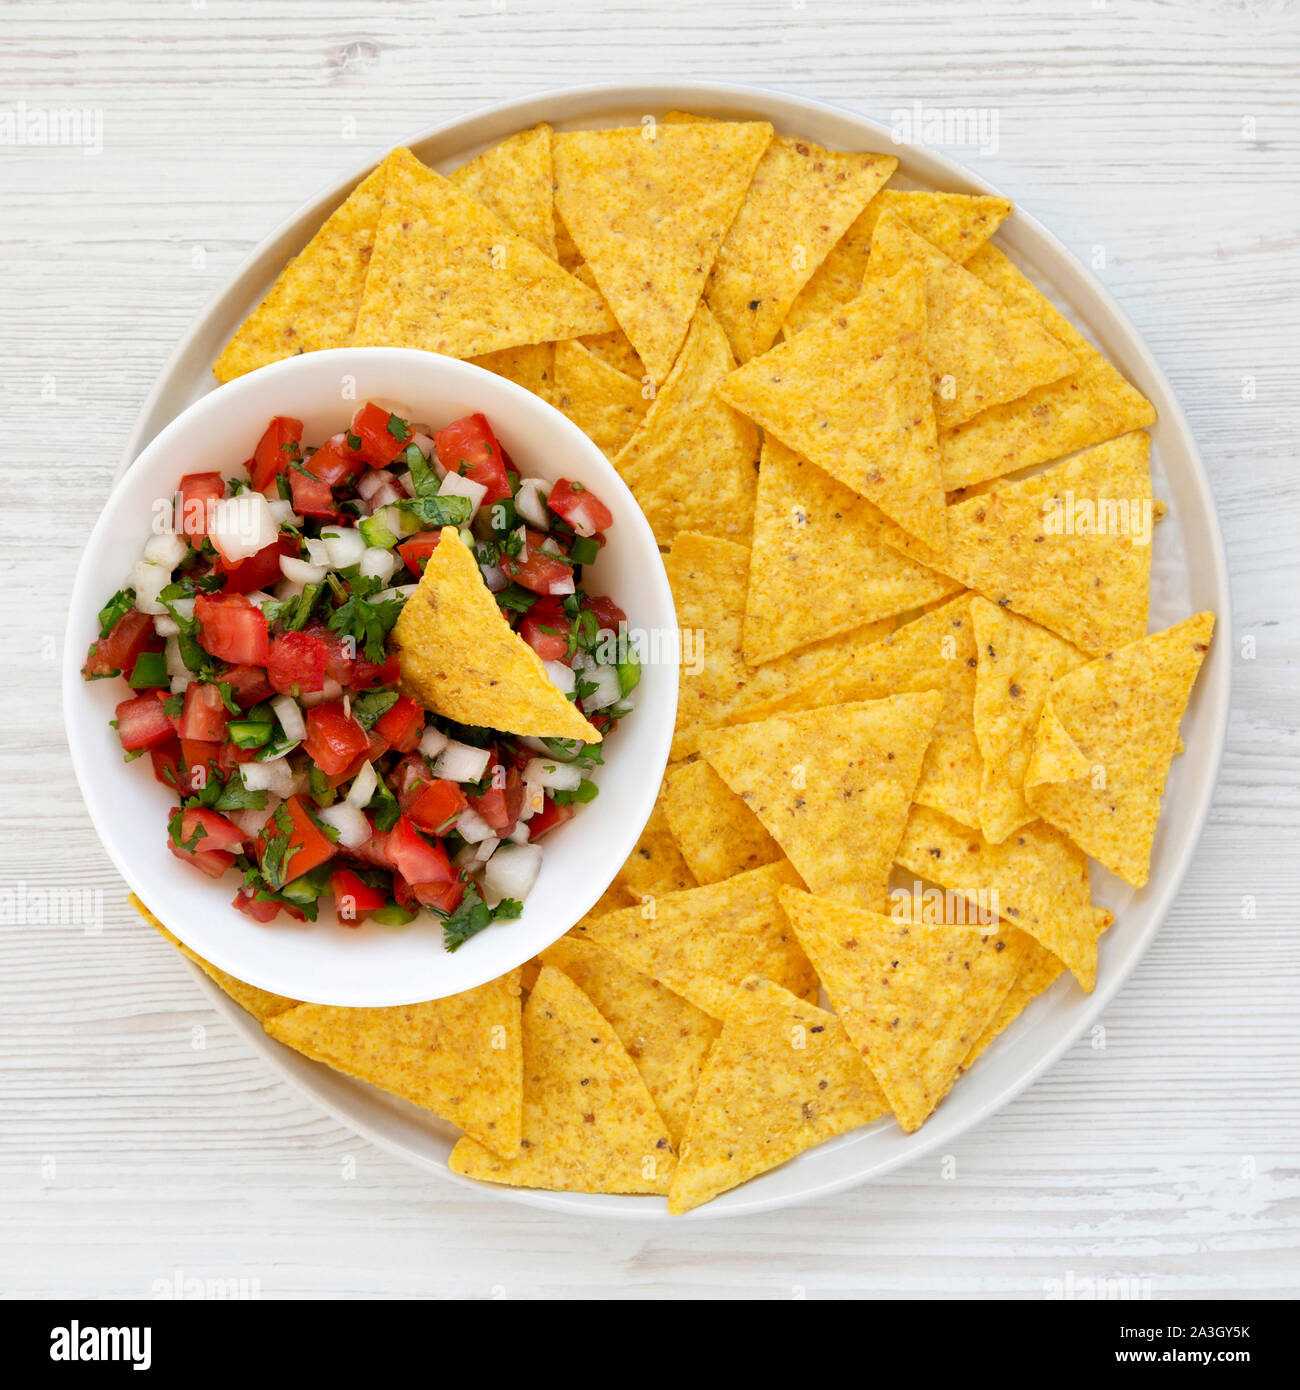 Pico de Gallo with gluten free tortilla chips on a white wooden surface, top view. Flat lay, overhead, from above. Close-up. Stock Photo